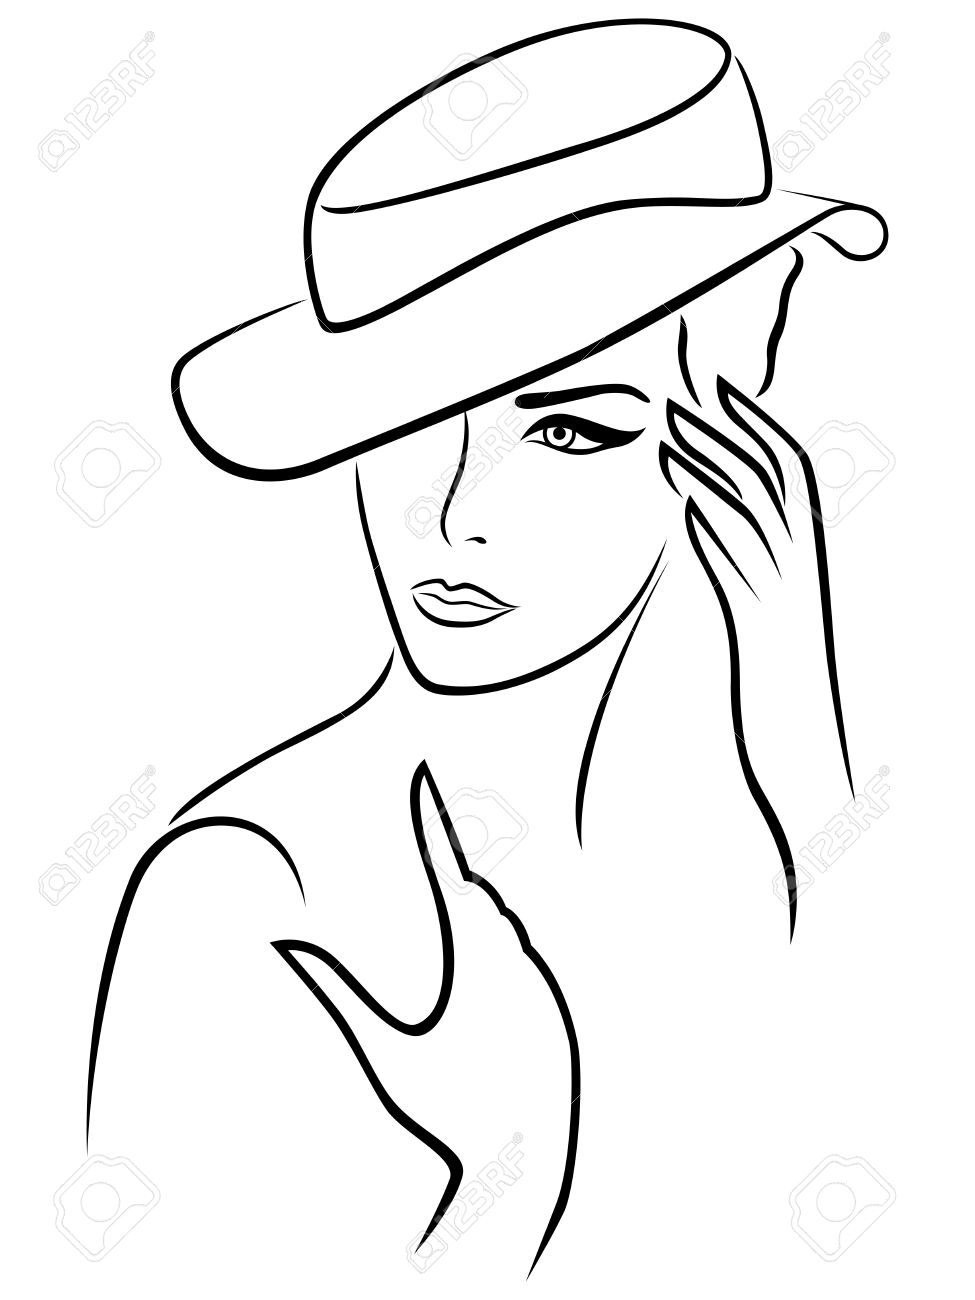 Elegant young woman in a hat, hand drawing black vector outline on a white background - 44580354